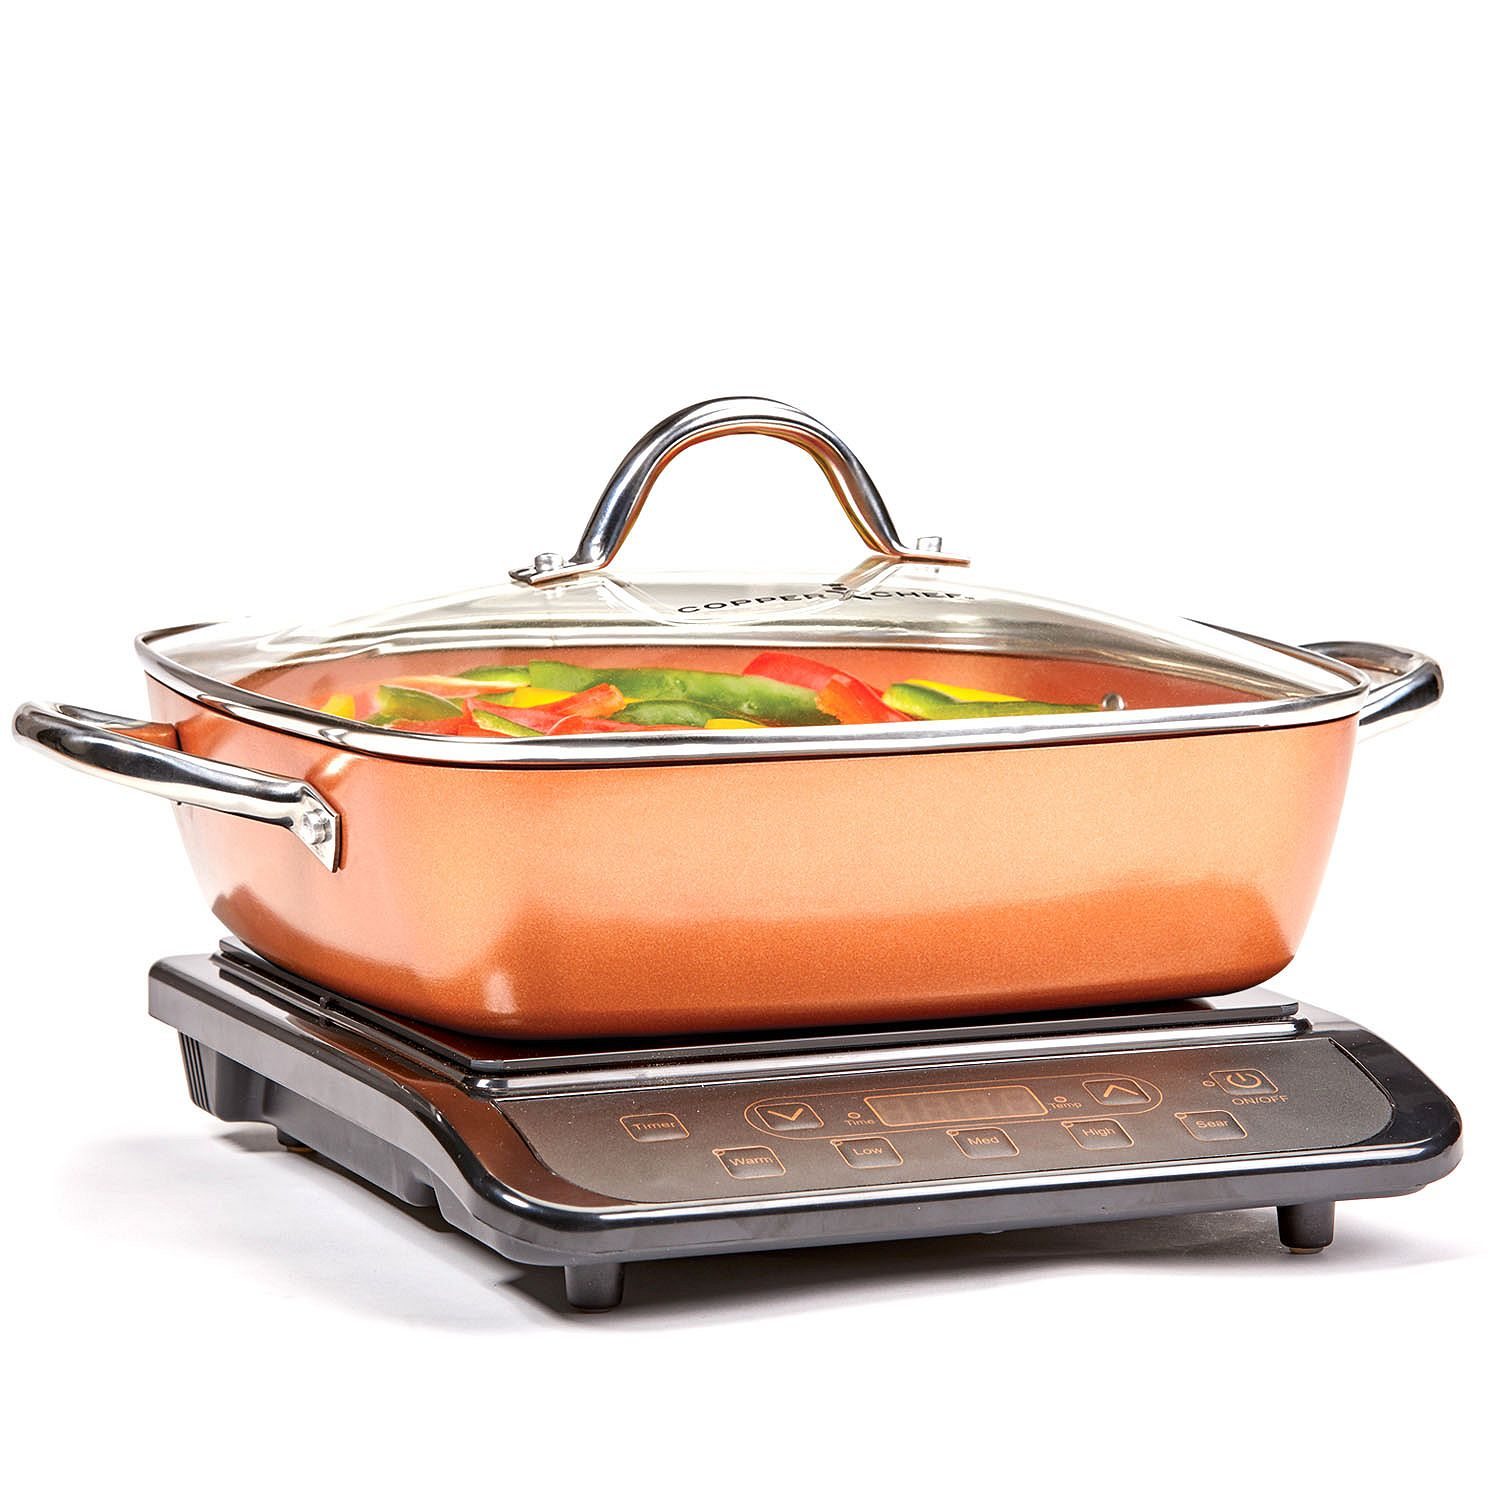 Copper Chef Induction Cooktop with 11u0022 Casserole Pan